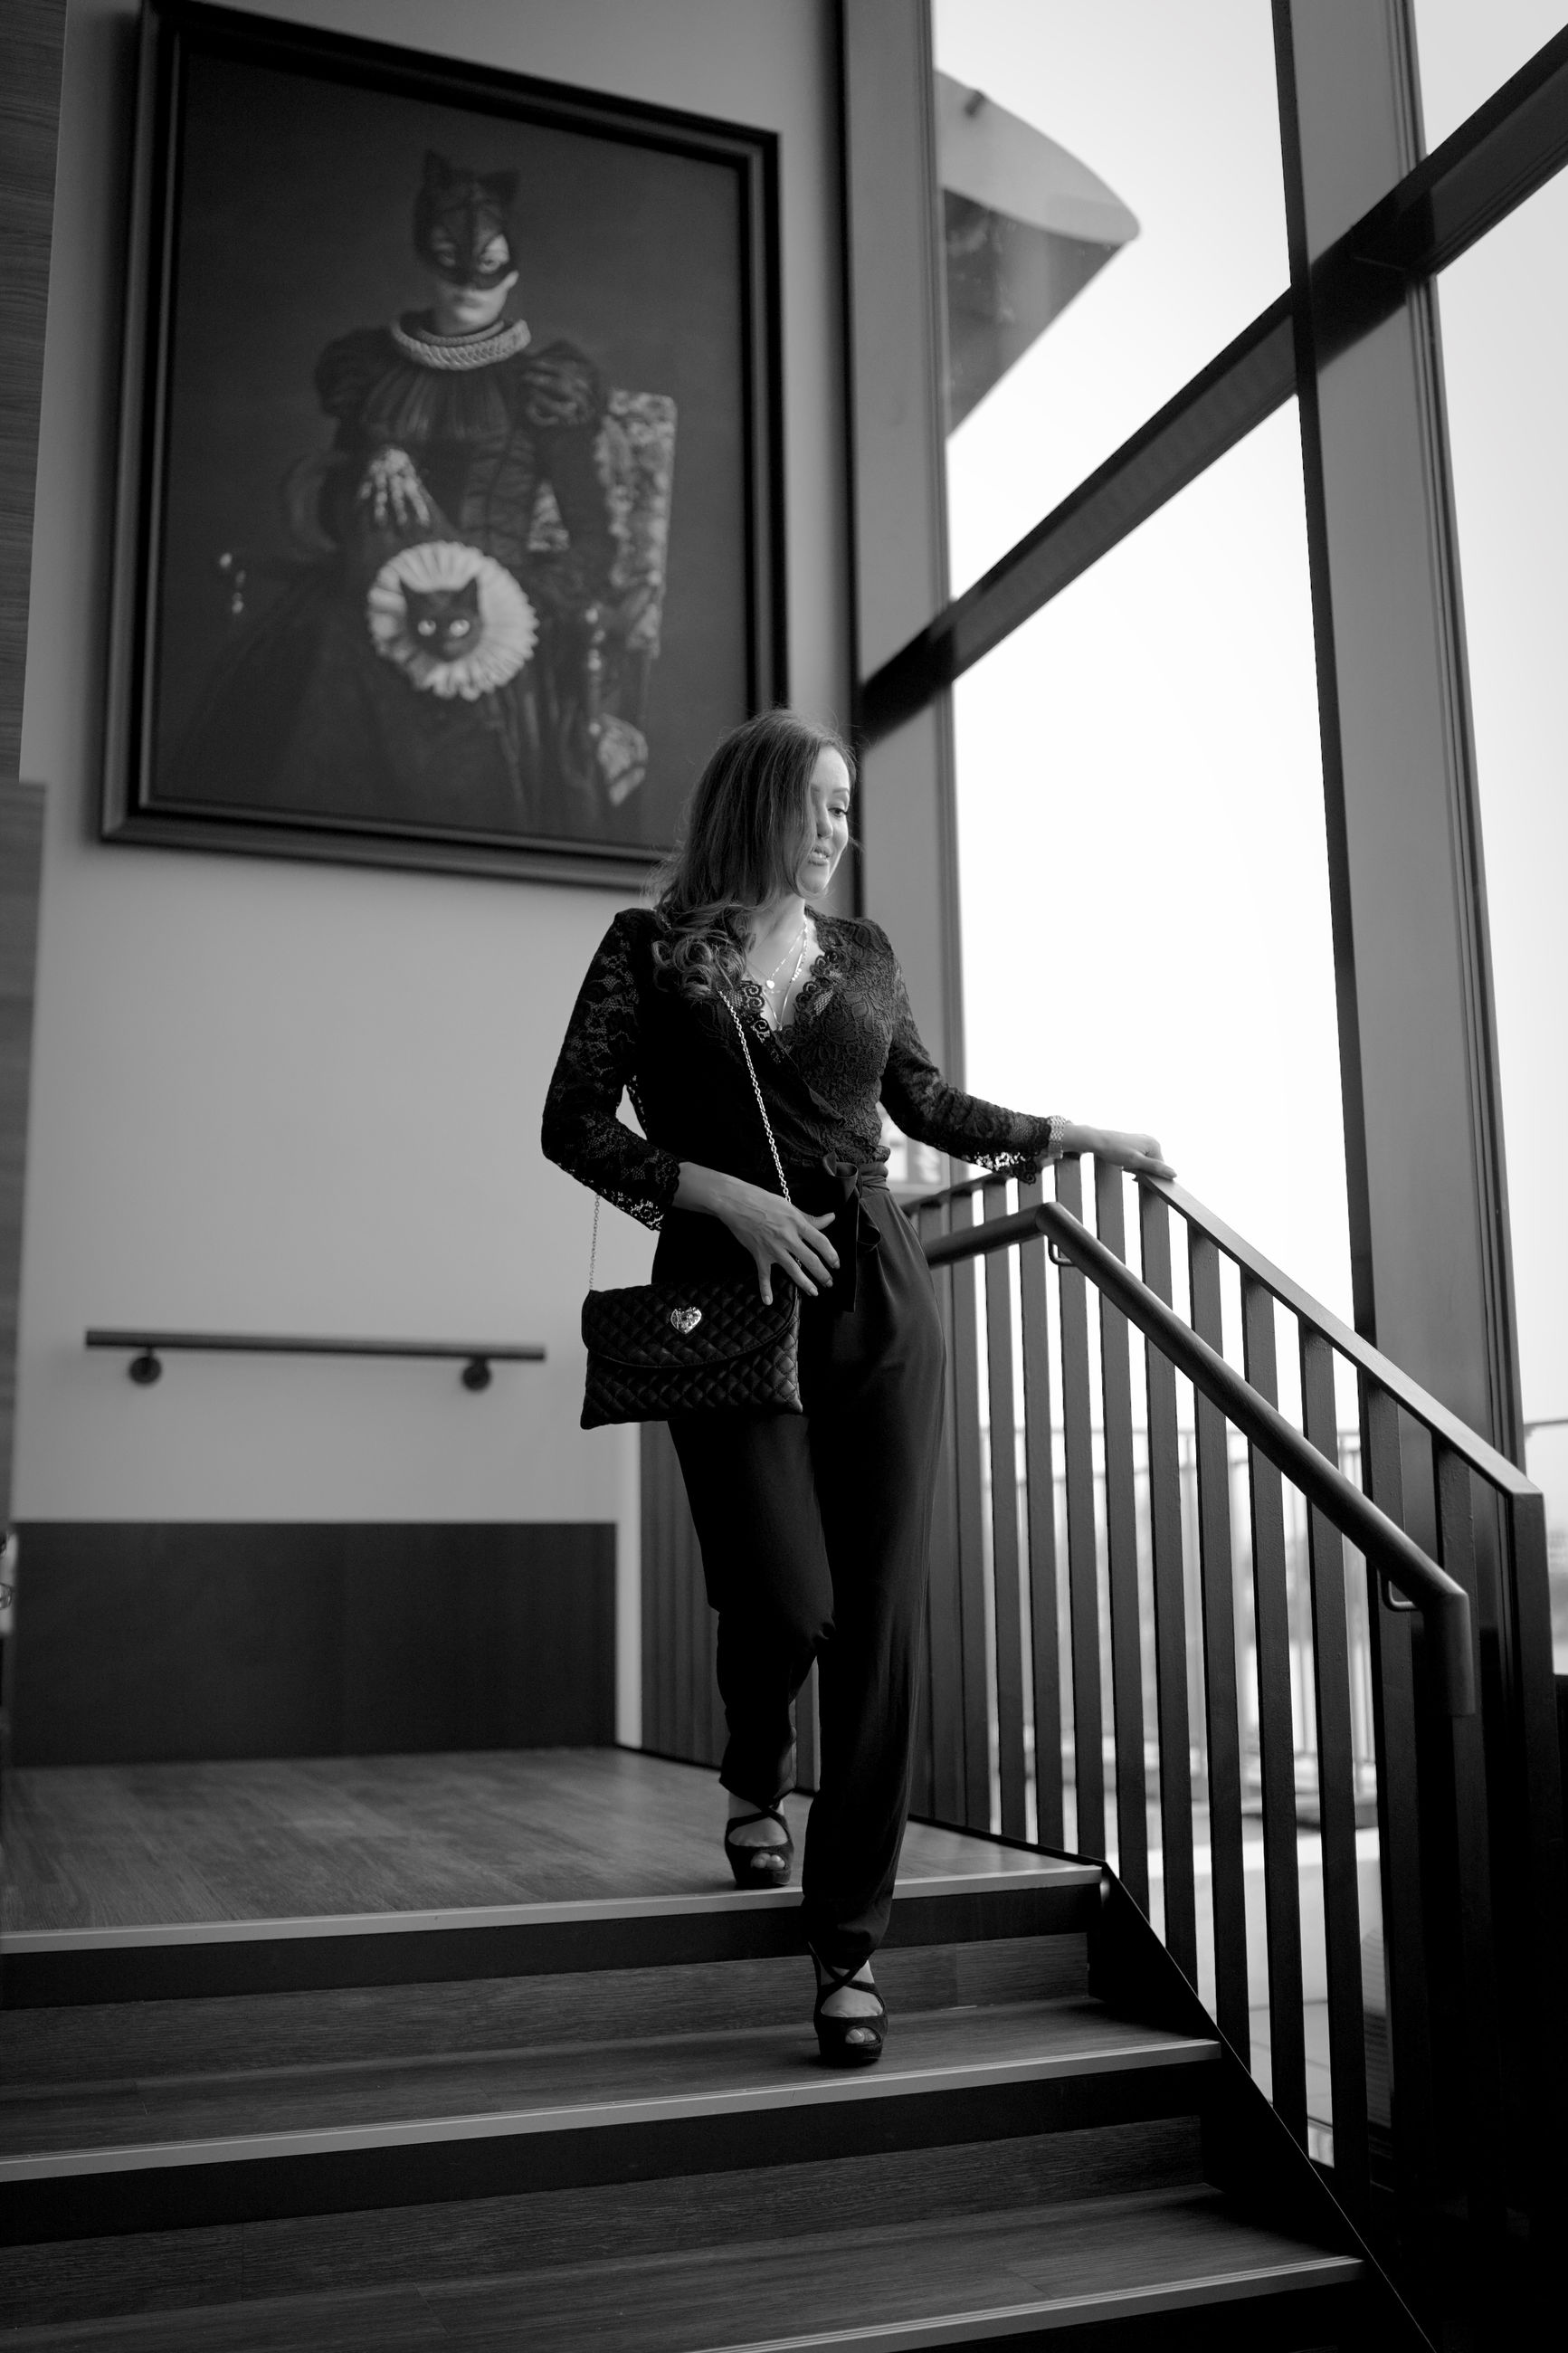 black, white, black and white, one person, full length, monochrome, monochrome photography, women, adult, architecture, indoors, staircase, lifestyles, railing, young adult, female, person, clothing, built structure, standing, footwear, day, steps and staircases, arts culture and entertainment